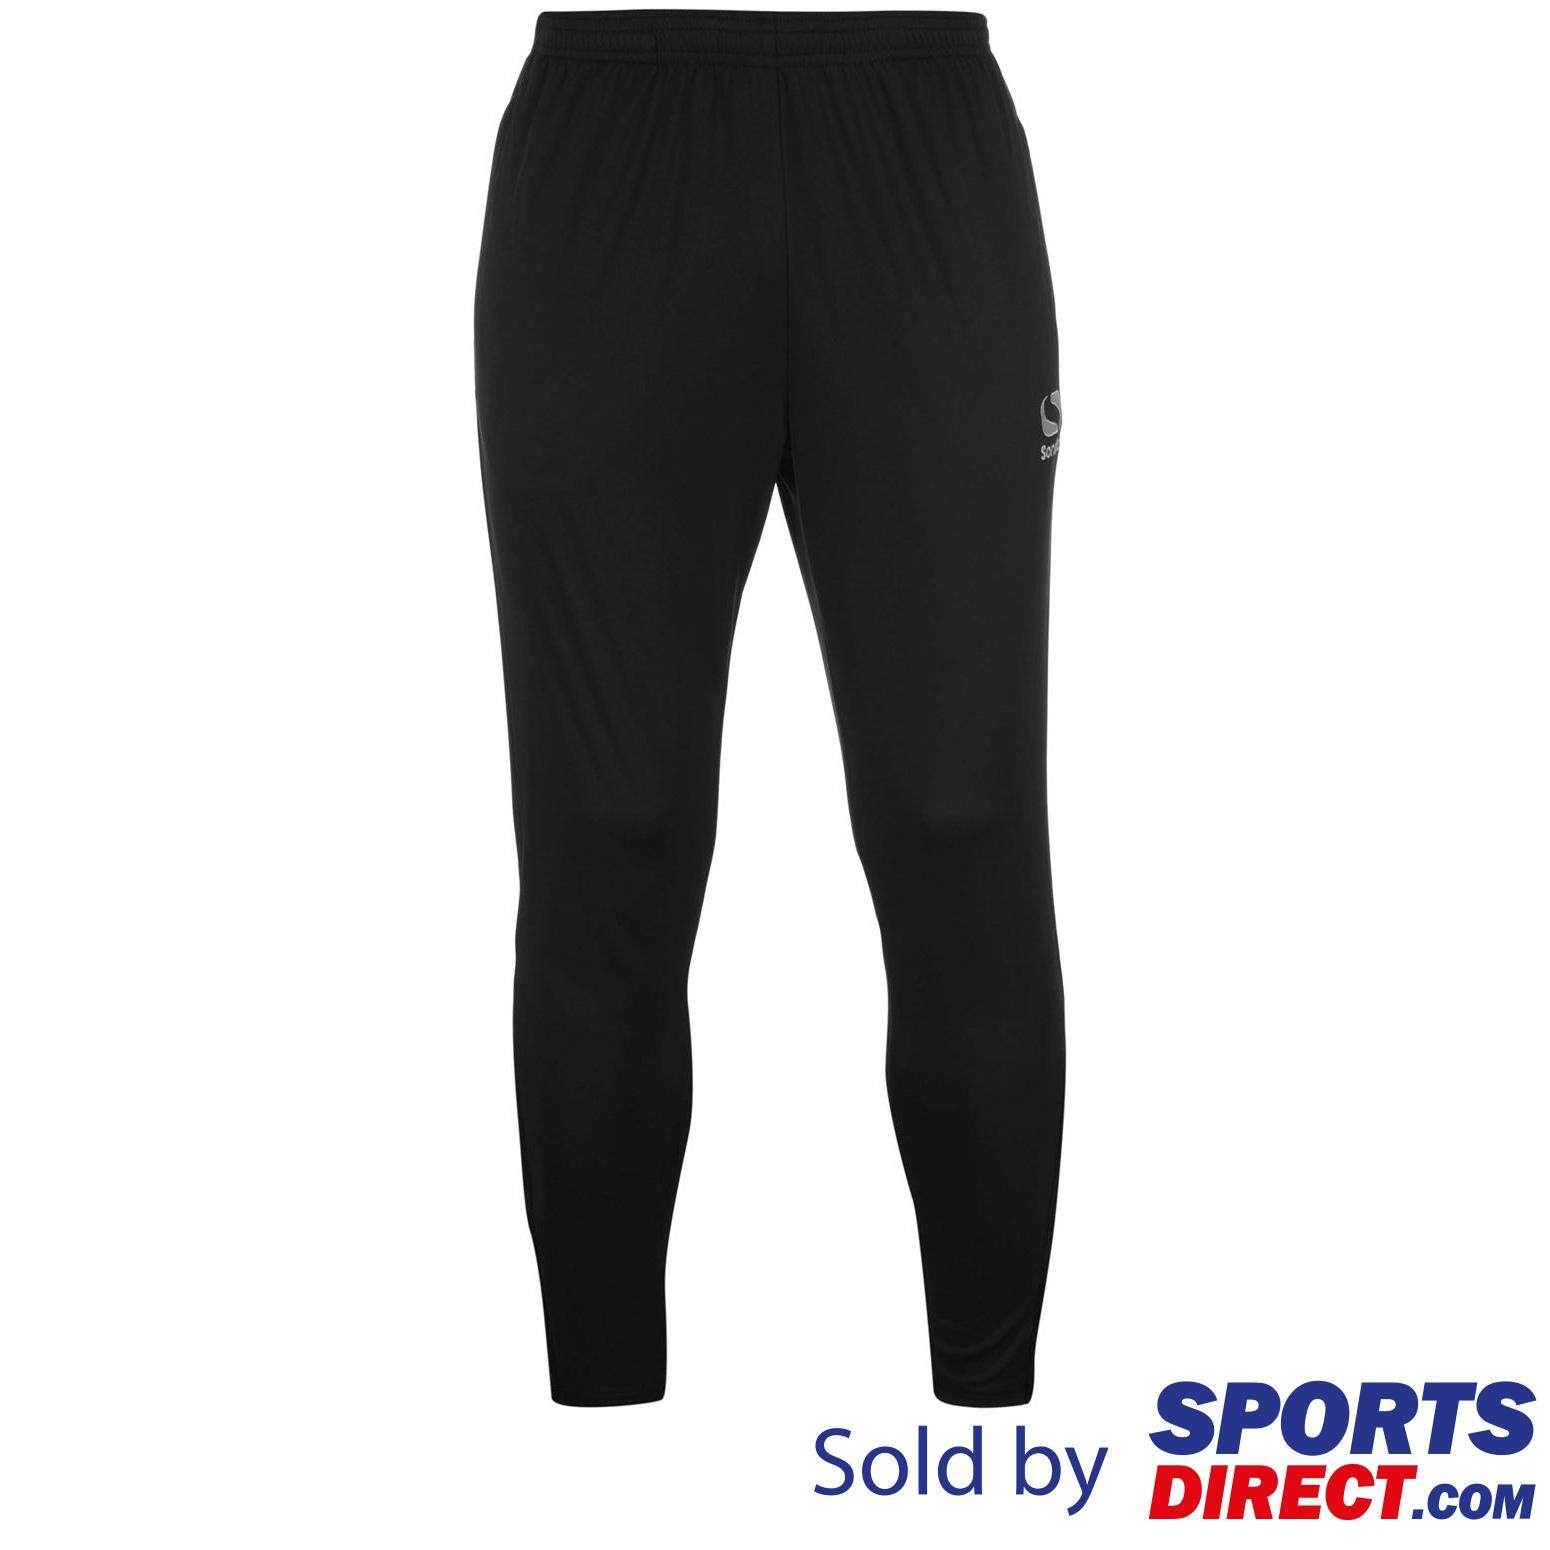 Sondico Kids Boys Strike Training Pants (black) By Sports Direct Mst Sdn Bhd.